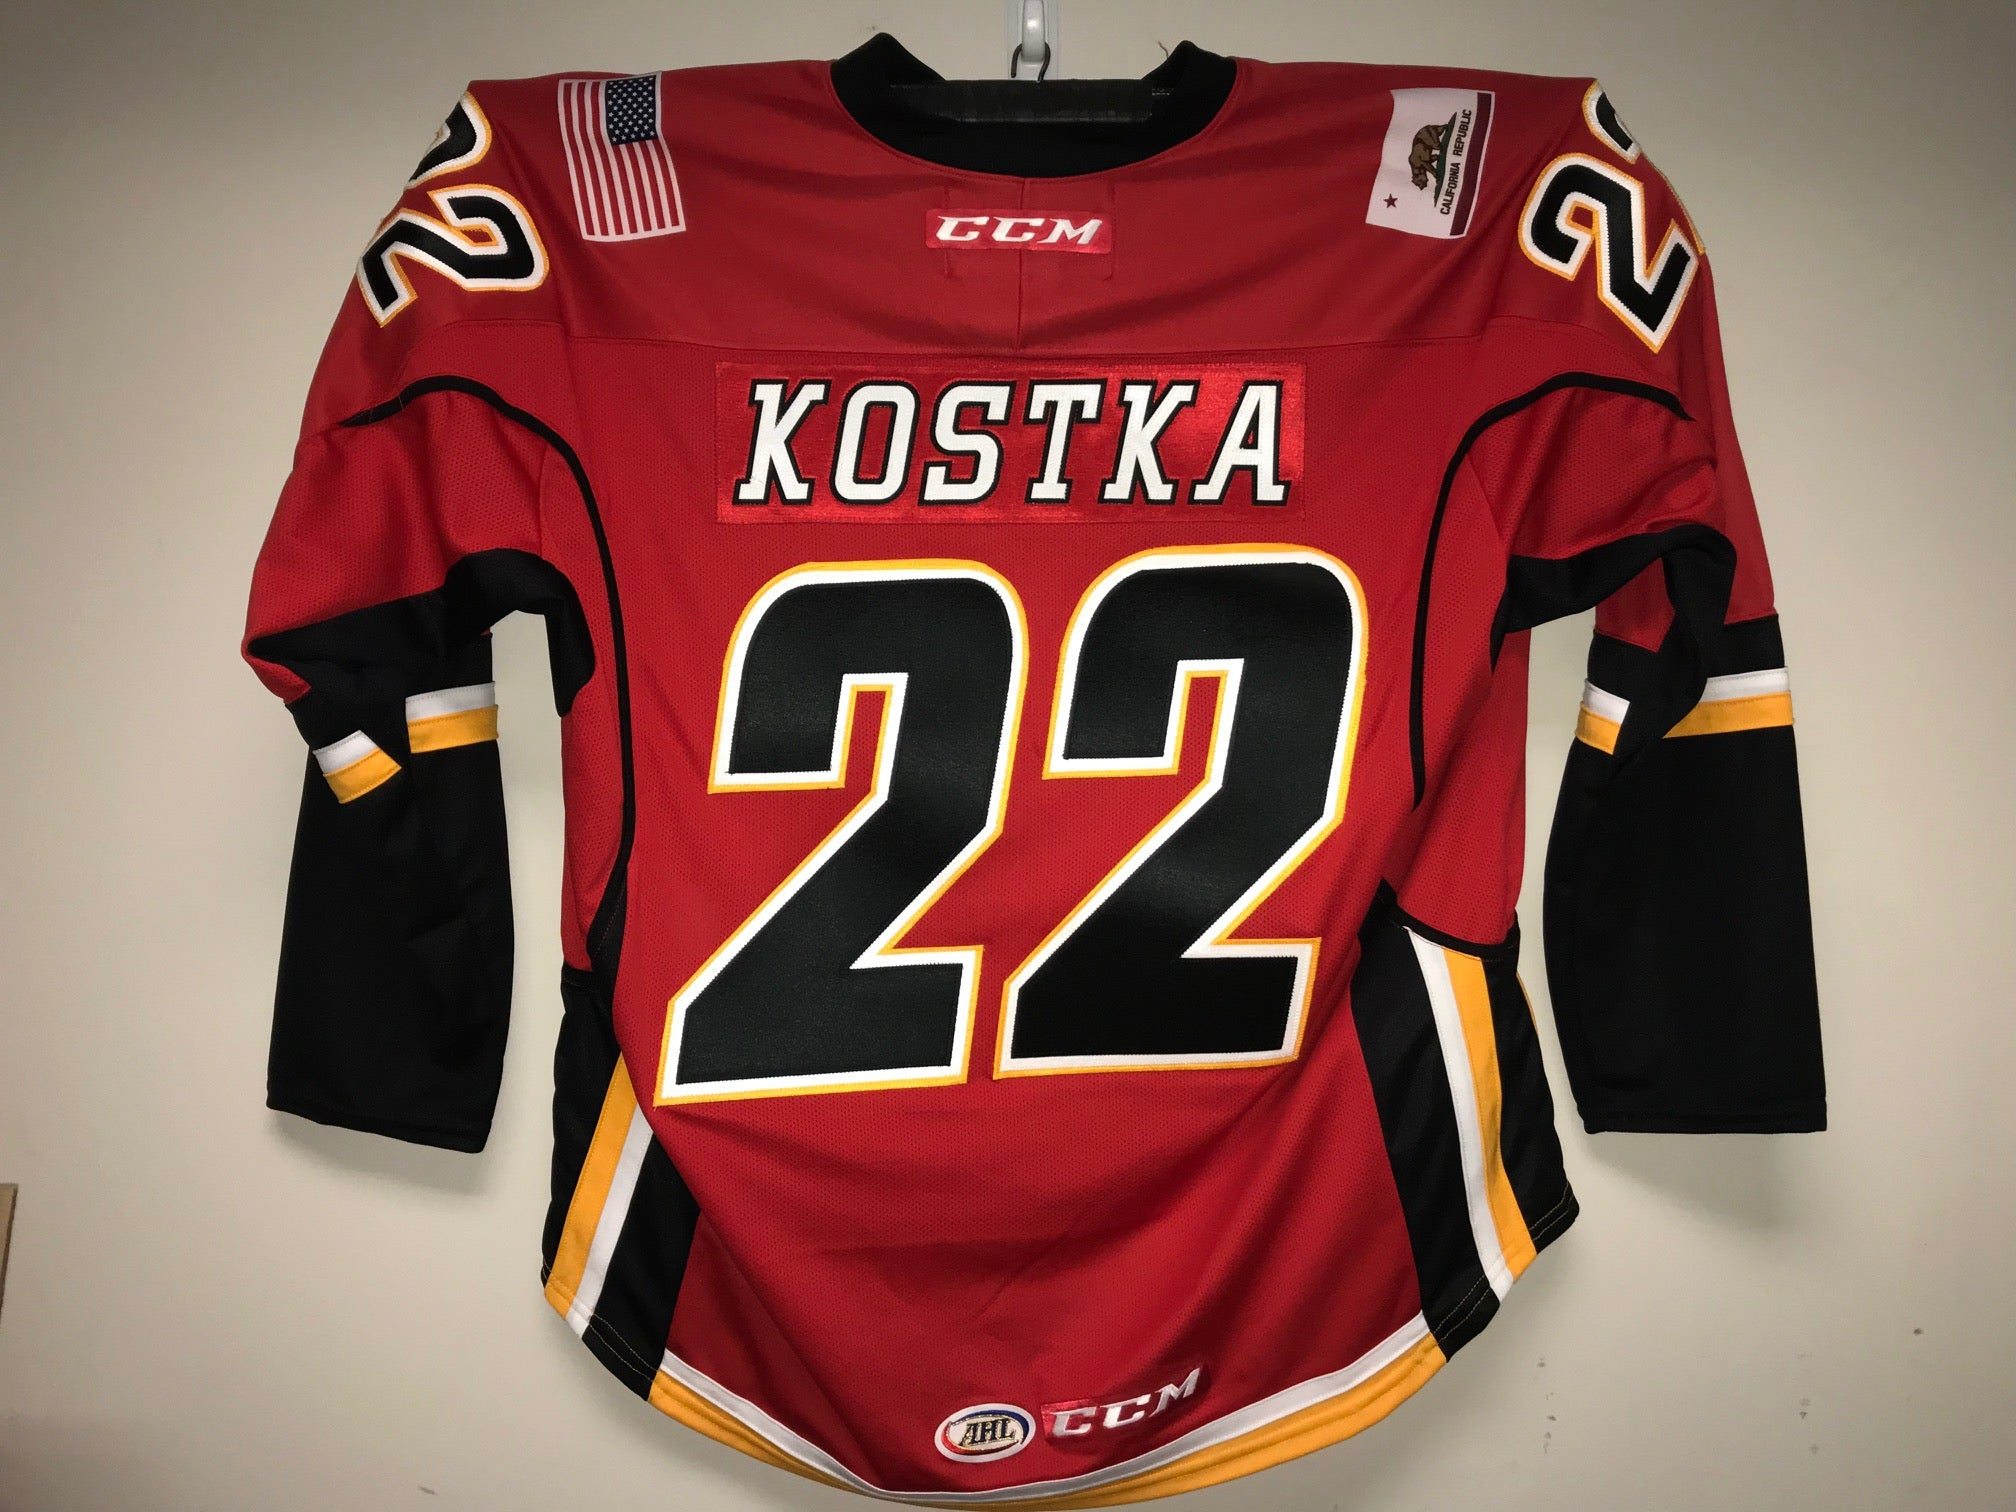 dac1f9bb1 Mike Kostka Stockton Heat Customized Red Jersey – ahlstore.com